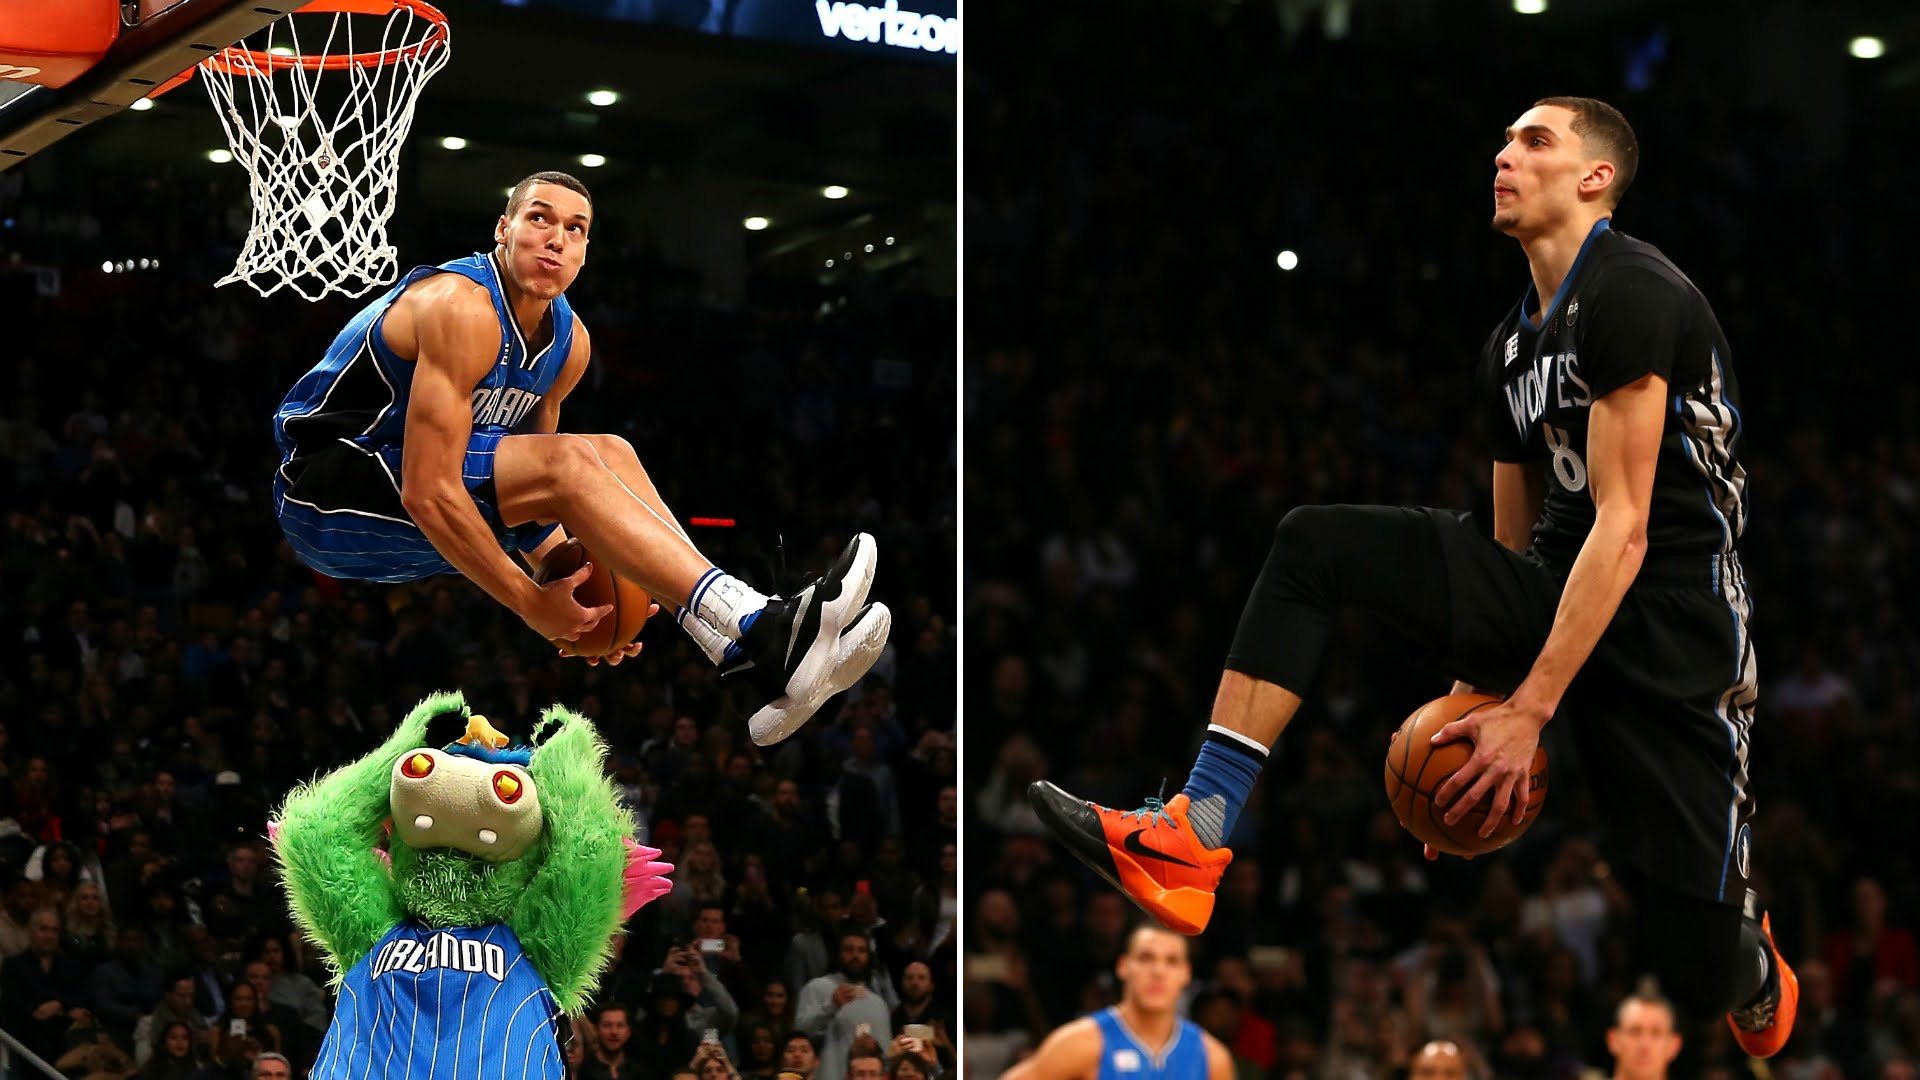 Aaron Gordon & Zach LaVine's Sick Dunks At The 2016 Slam Dunk Contest